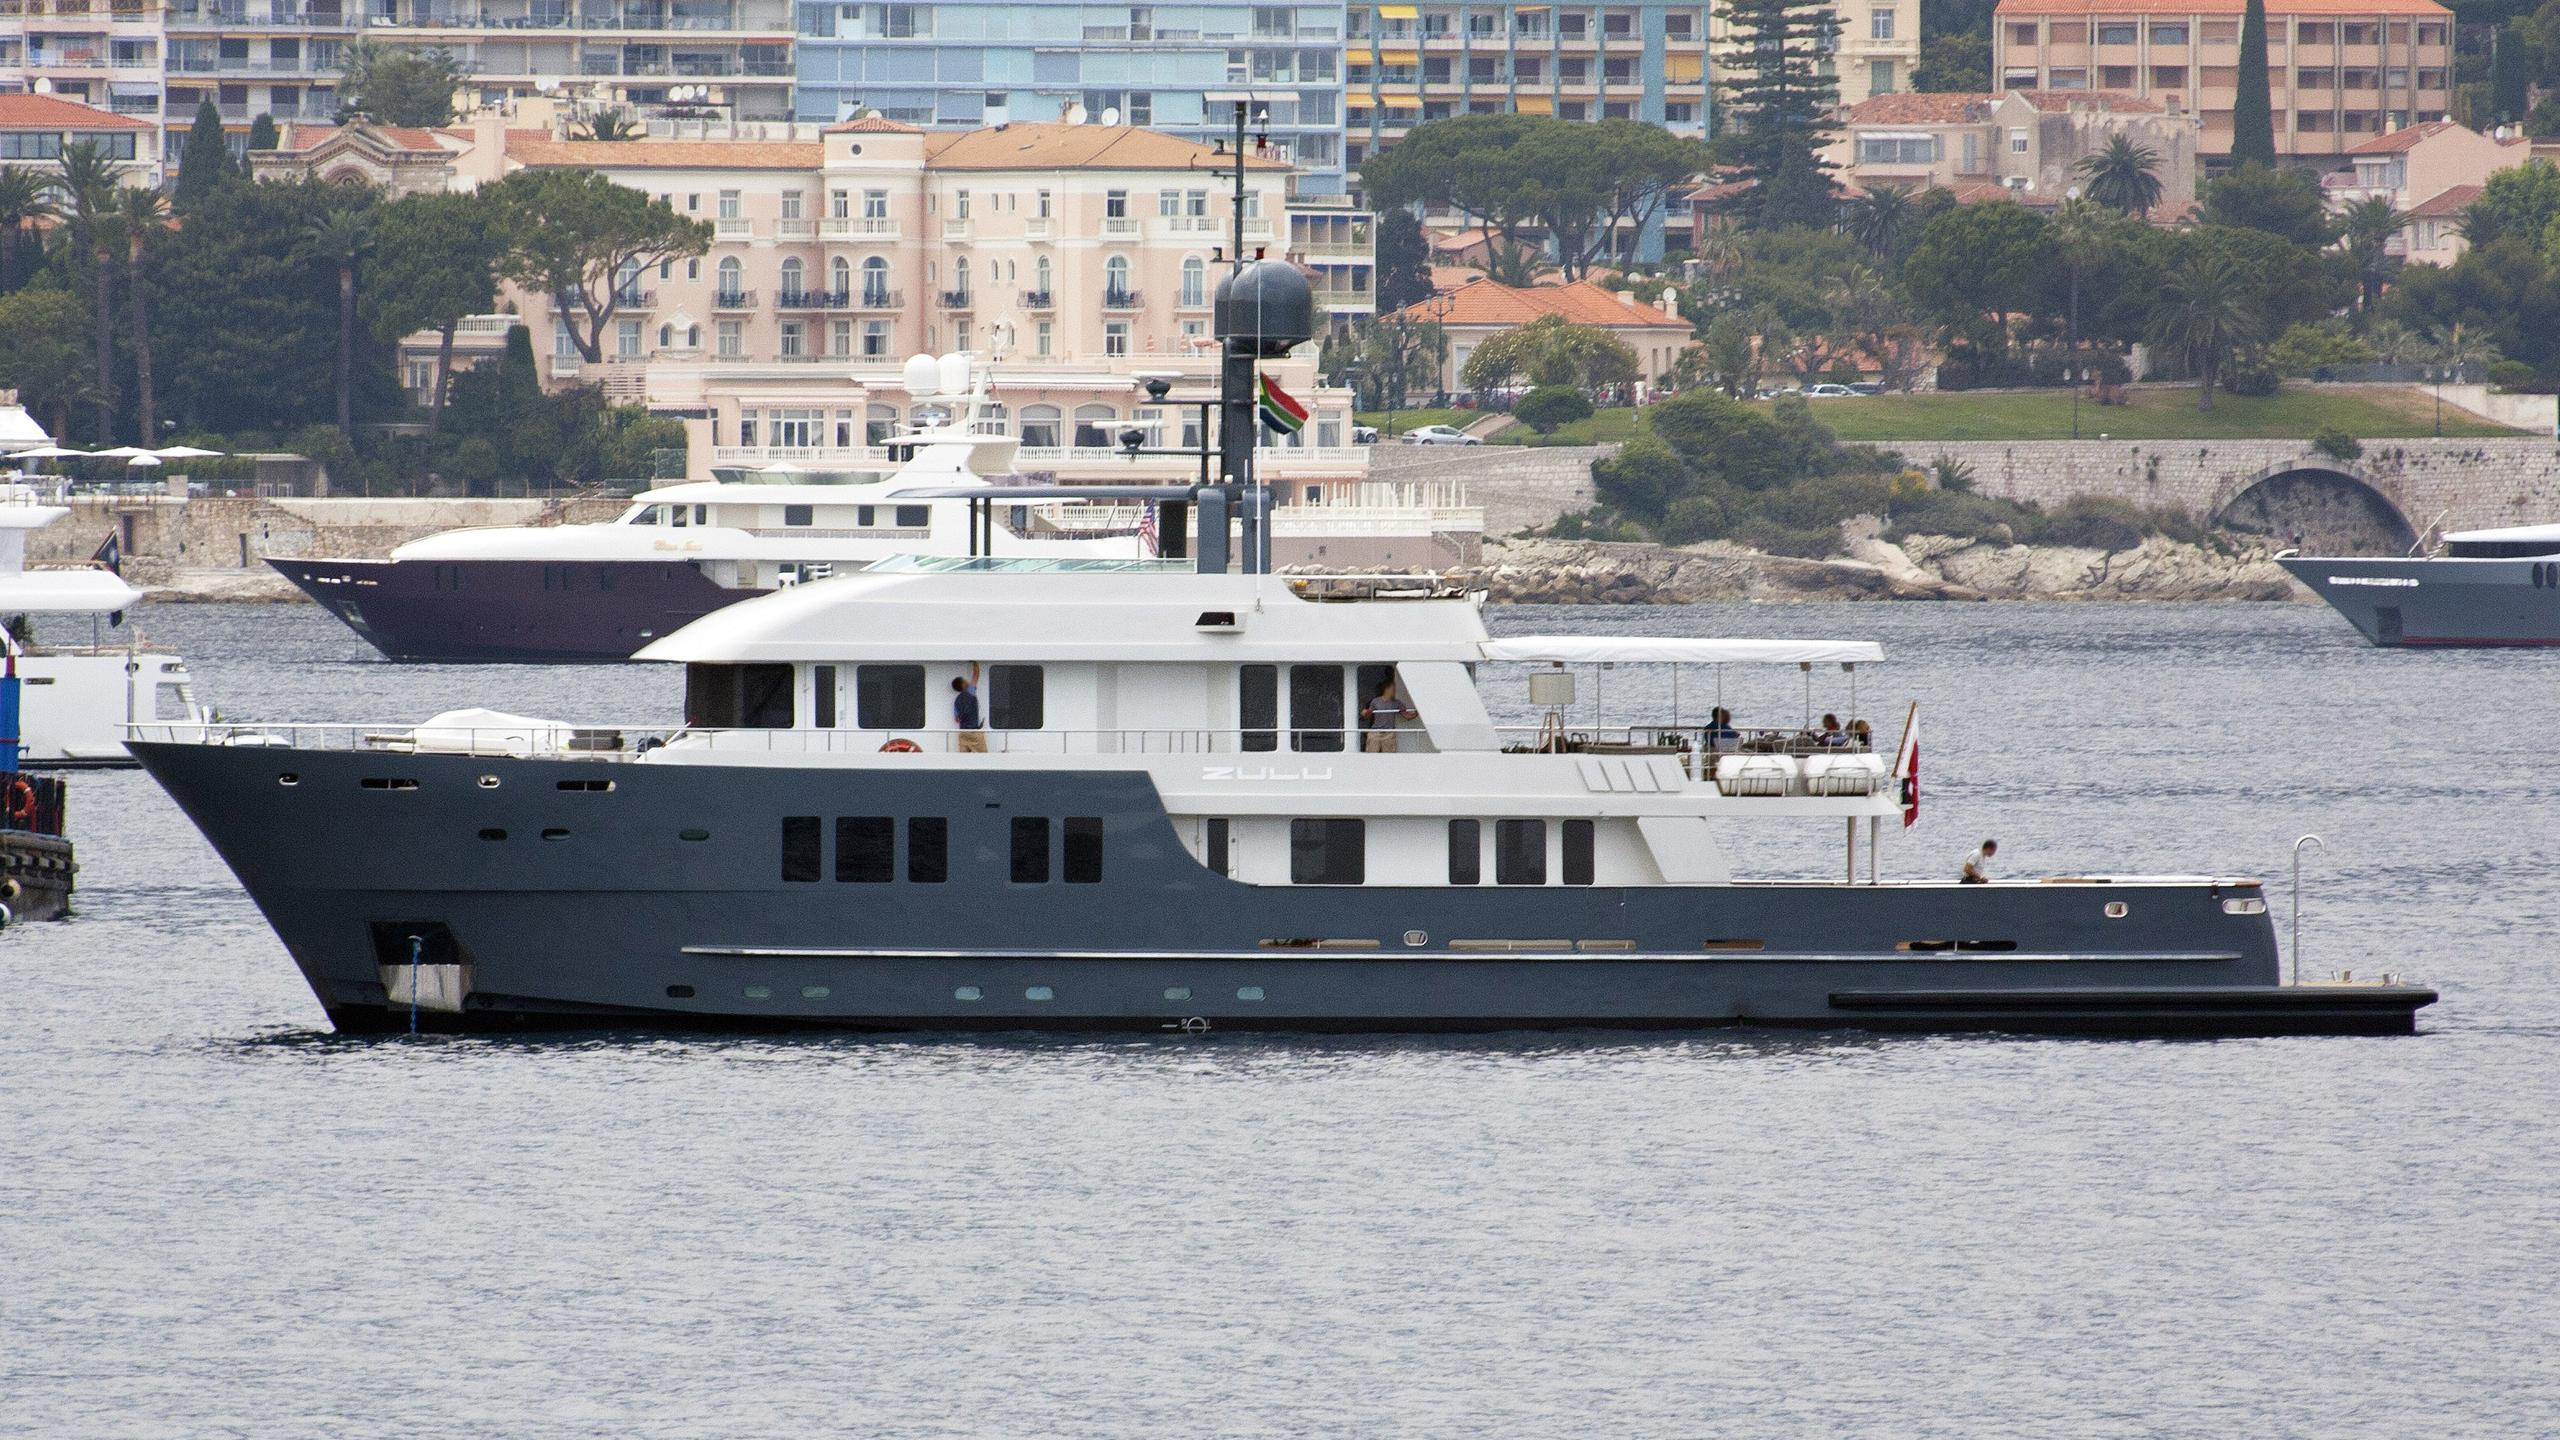 zulu-motor-expedition-yacht-inace-explorer-100-2009-35m-profile